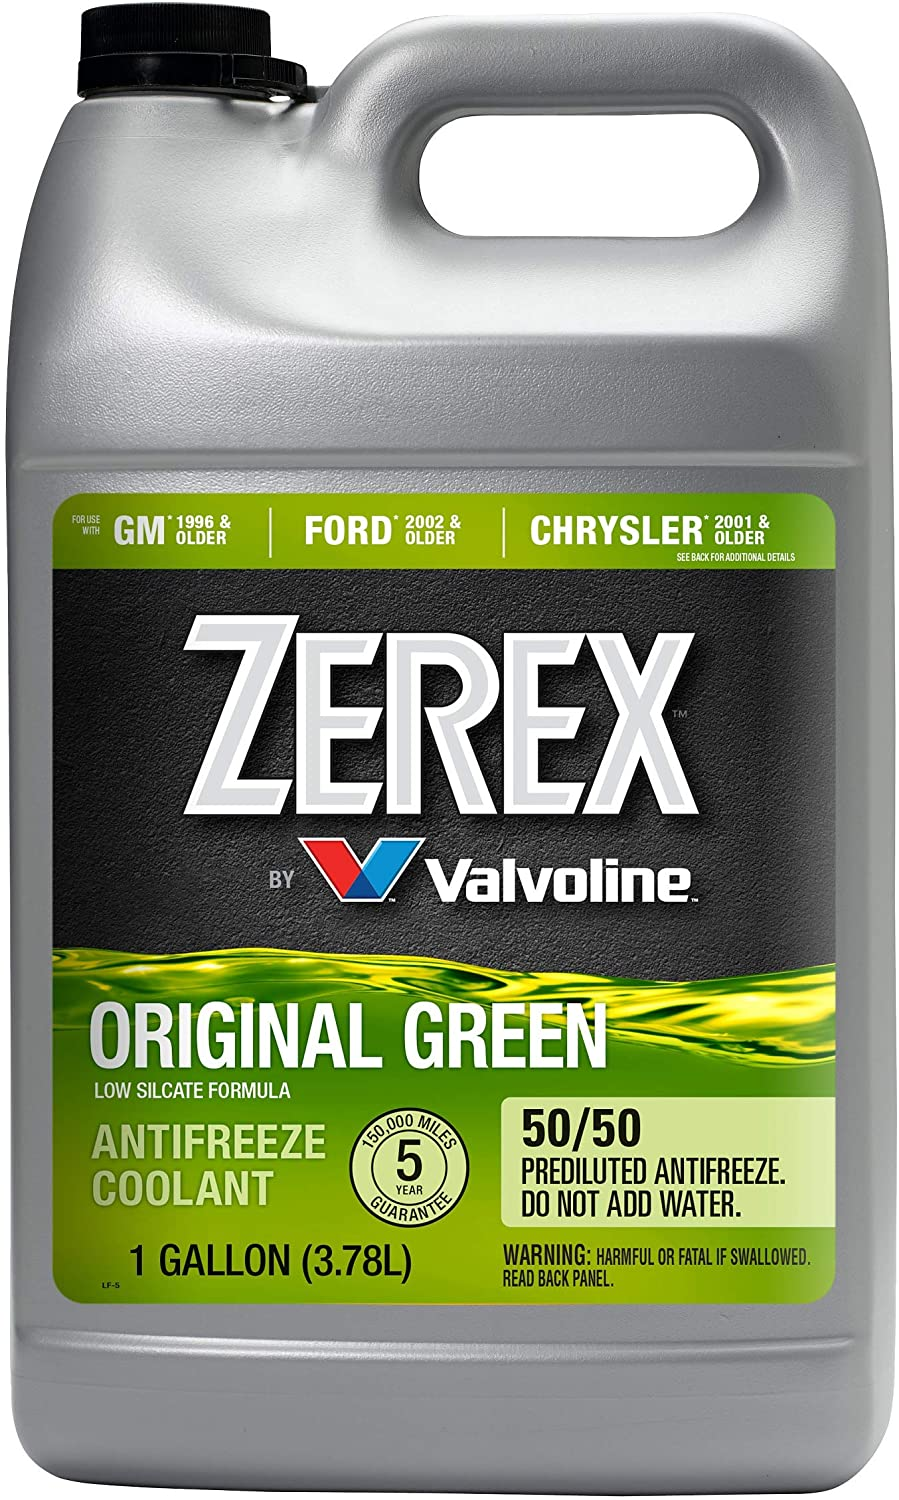 Zerex 70% OFF Outlet Low price Original Green 50 Antifreeze Co Ready-to-Use Prediluted